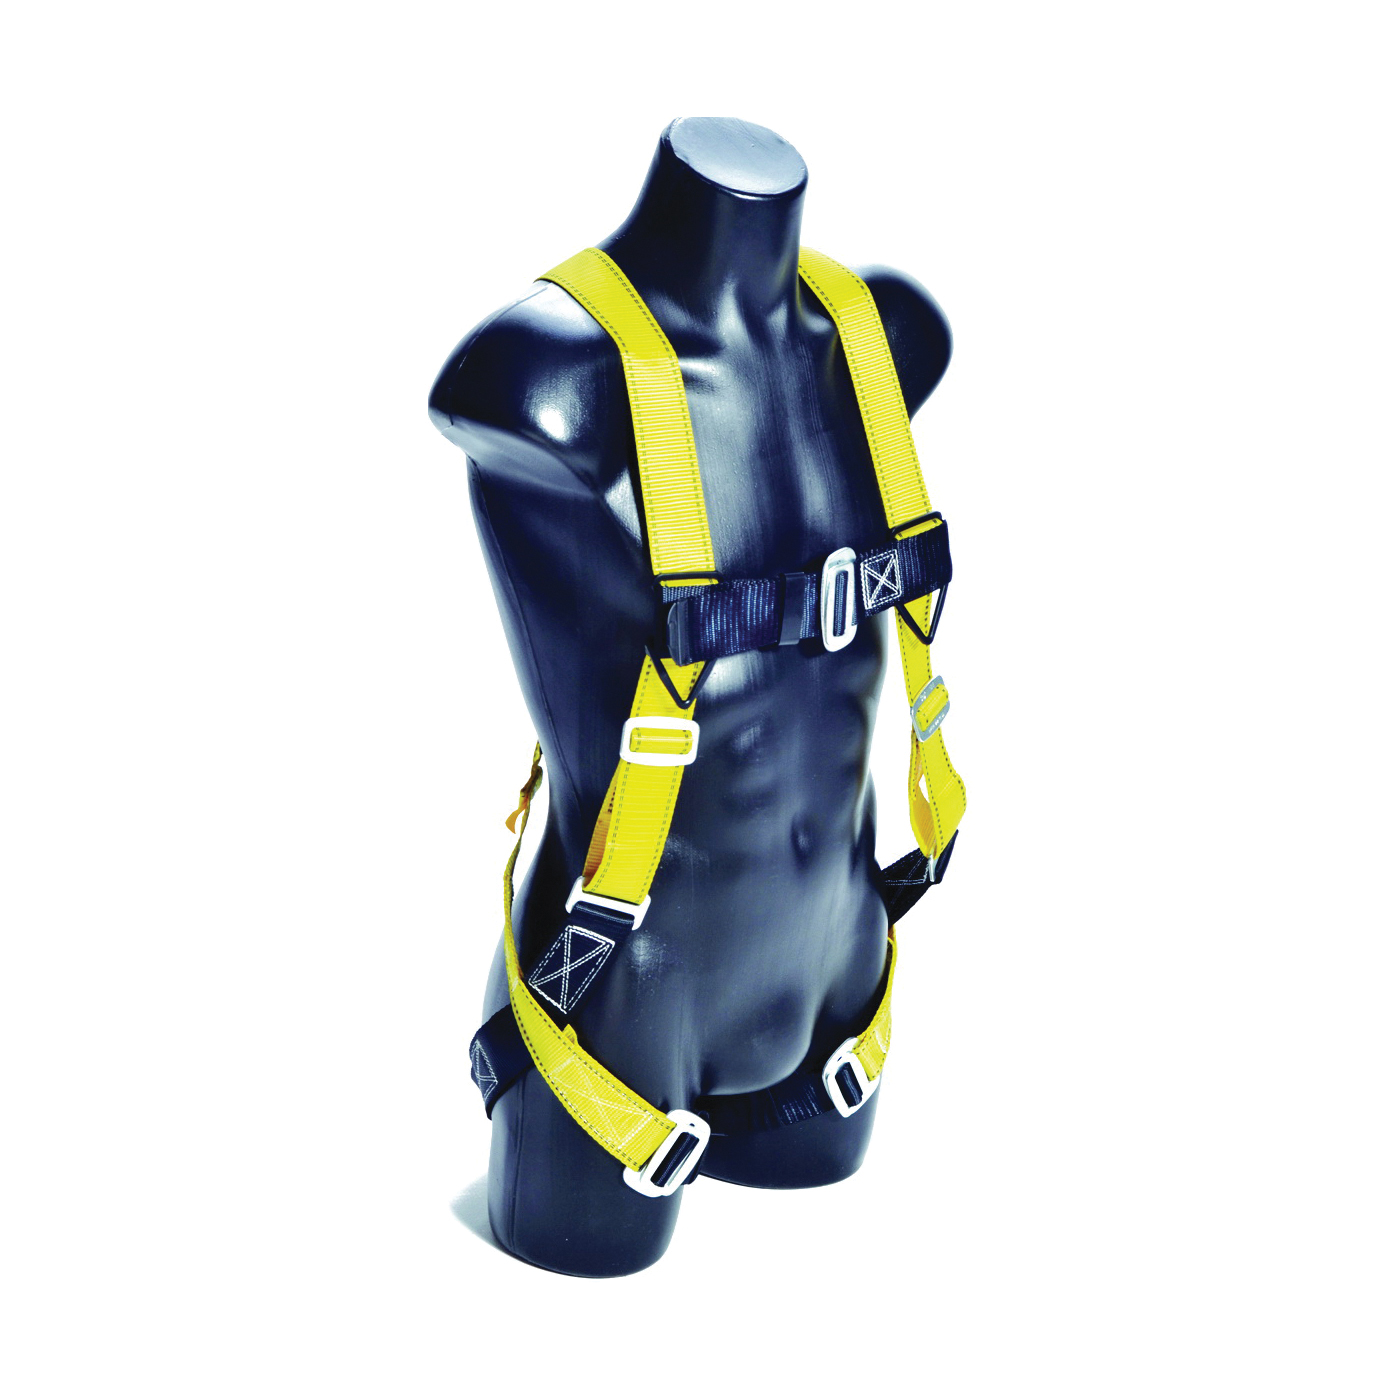 Picture of Qualcraft 01701 HUV Harness, XL/2XL, 180 to 360 lb